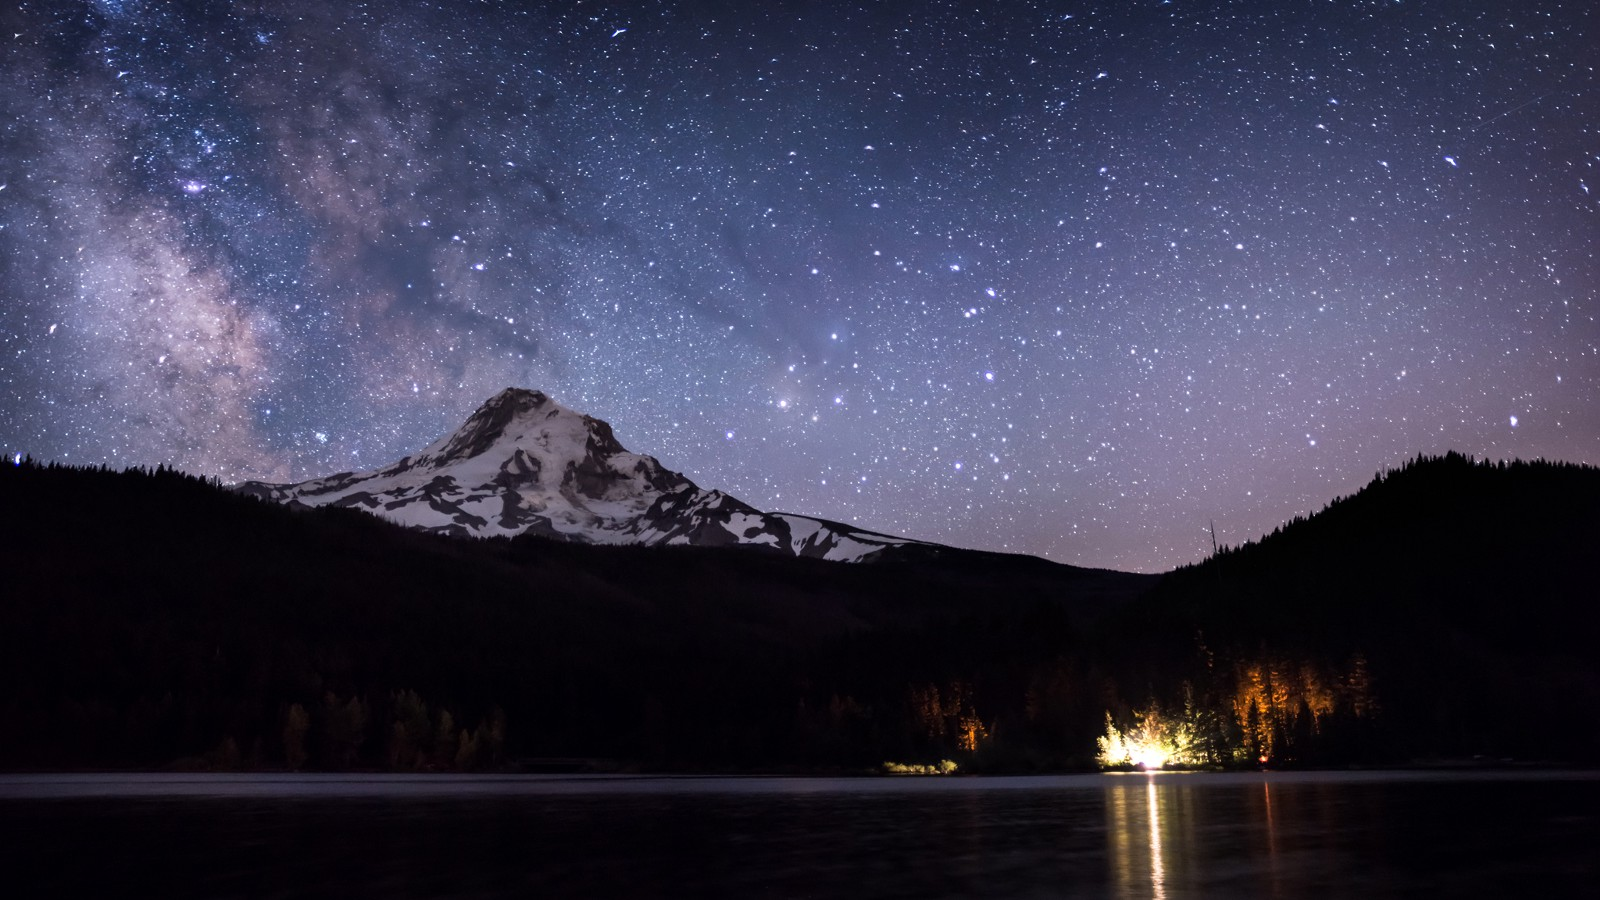 The Milky Way over Mt. Hood, from Laurance Lake near Parkdale, Oregon